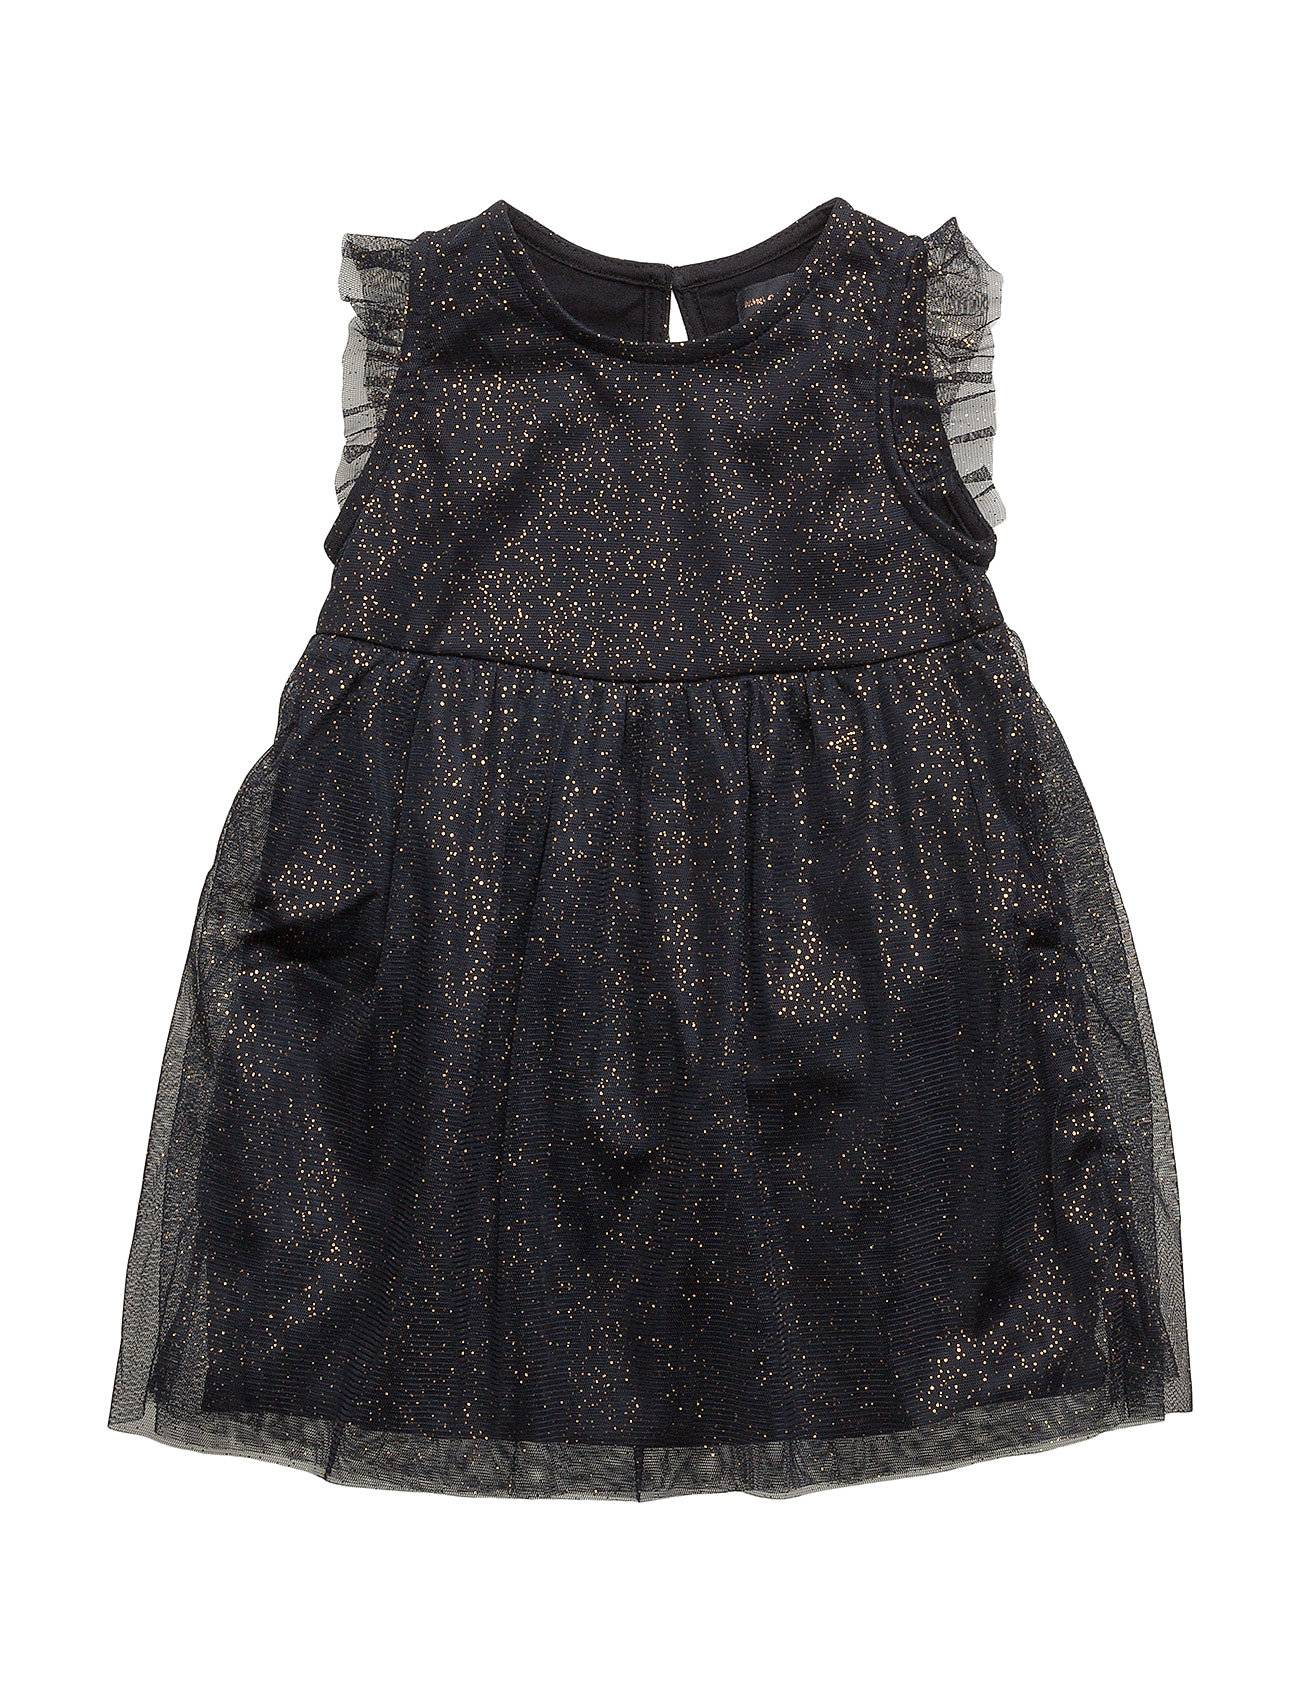 Mini A Ture Dita Dress, Bm